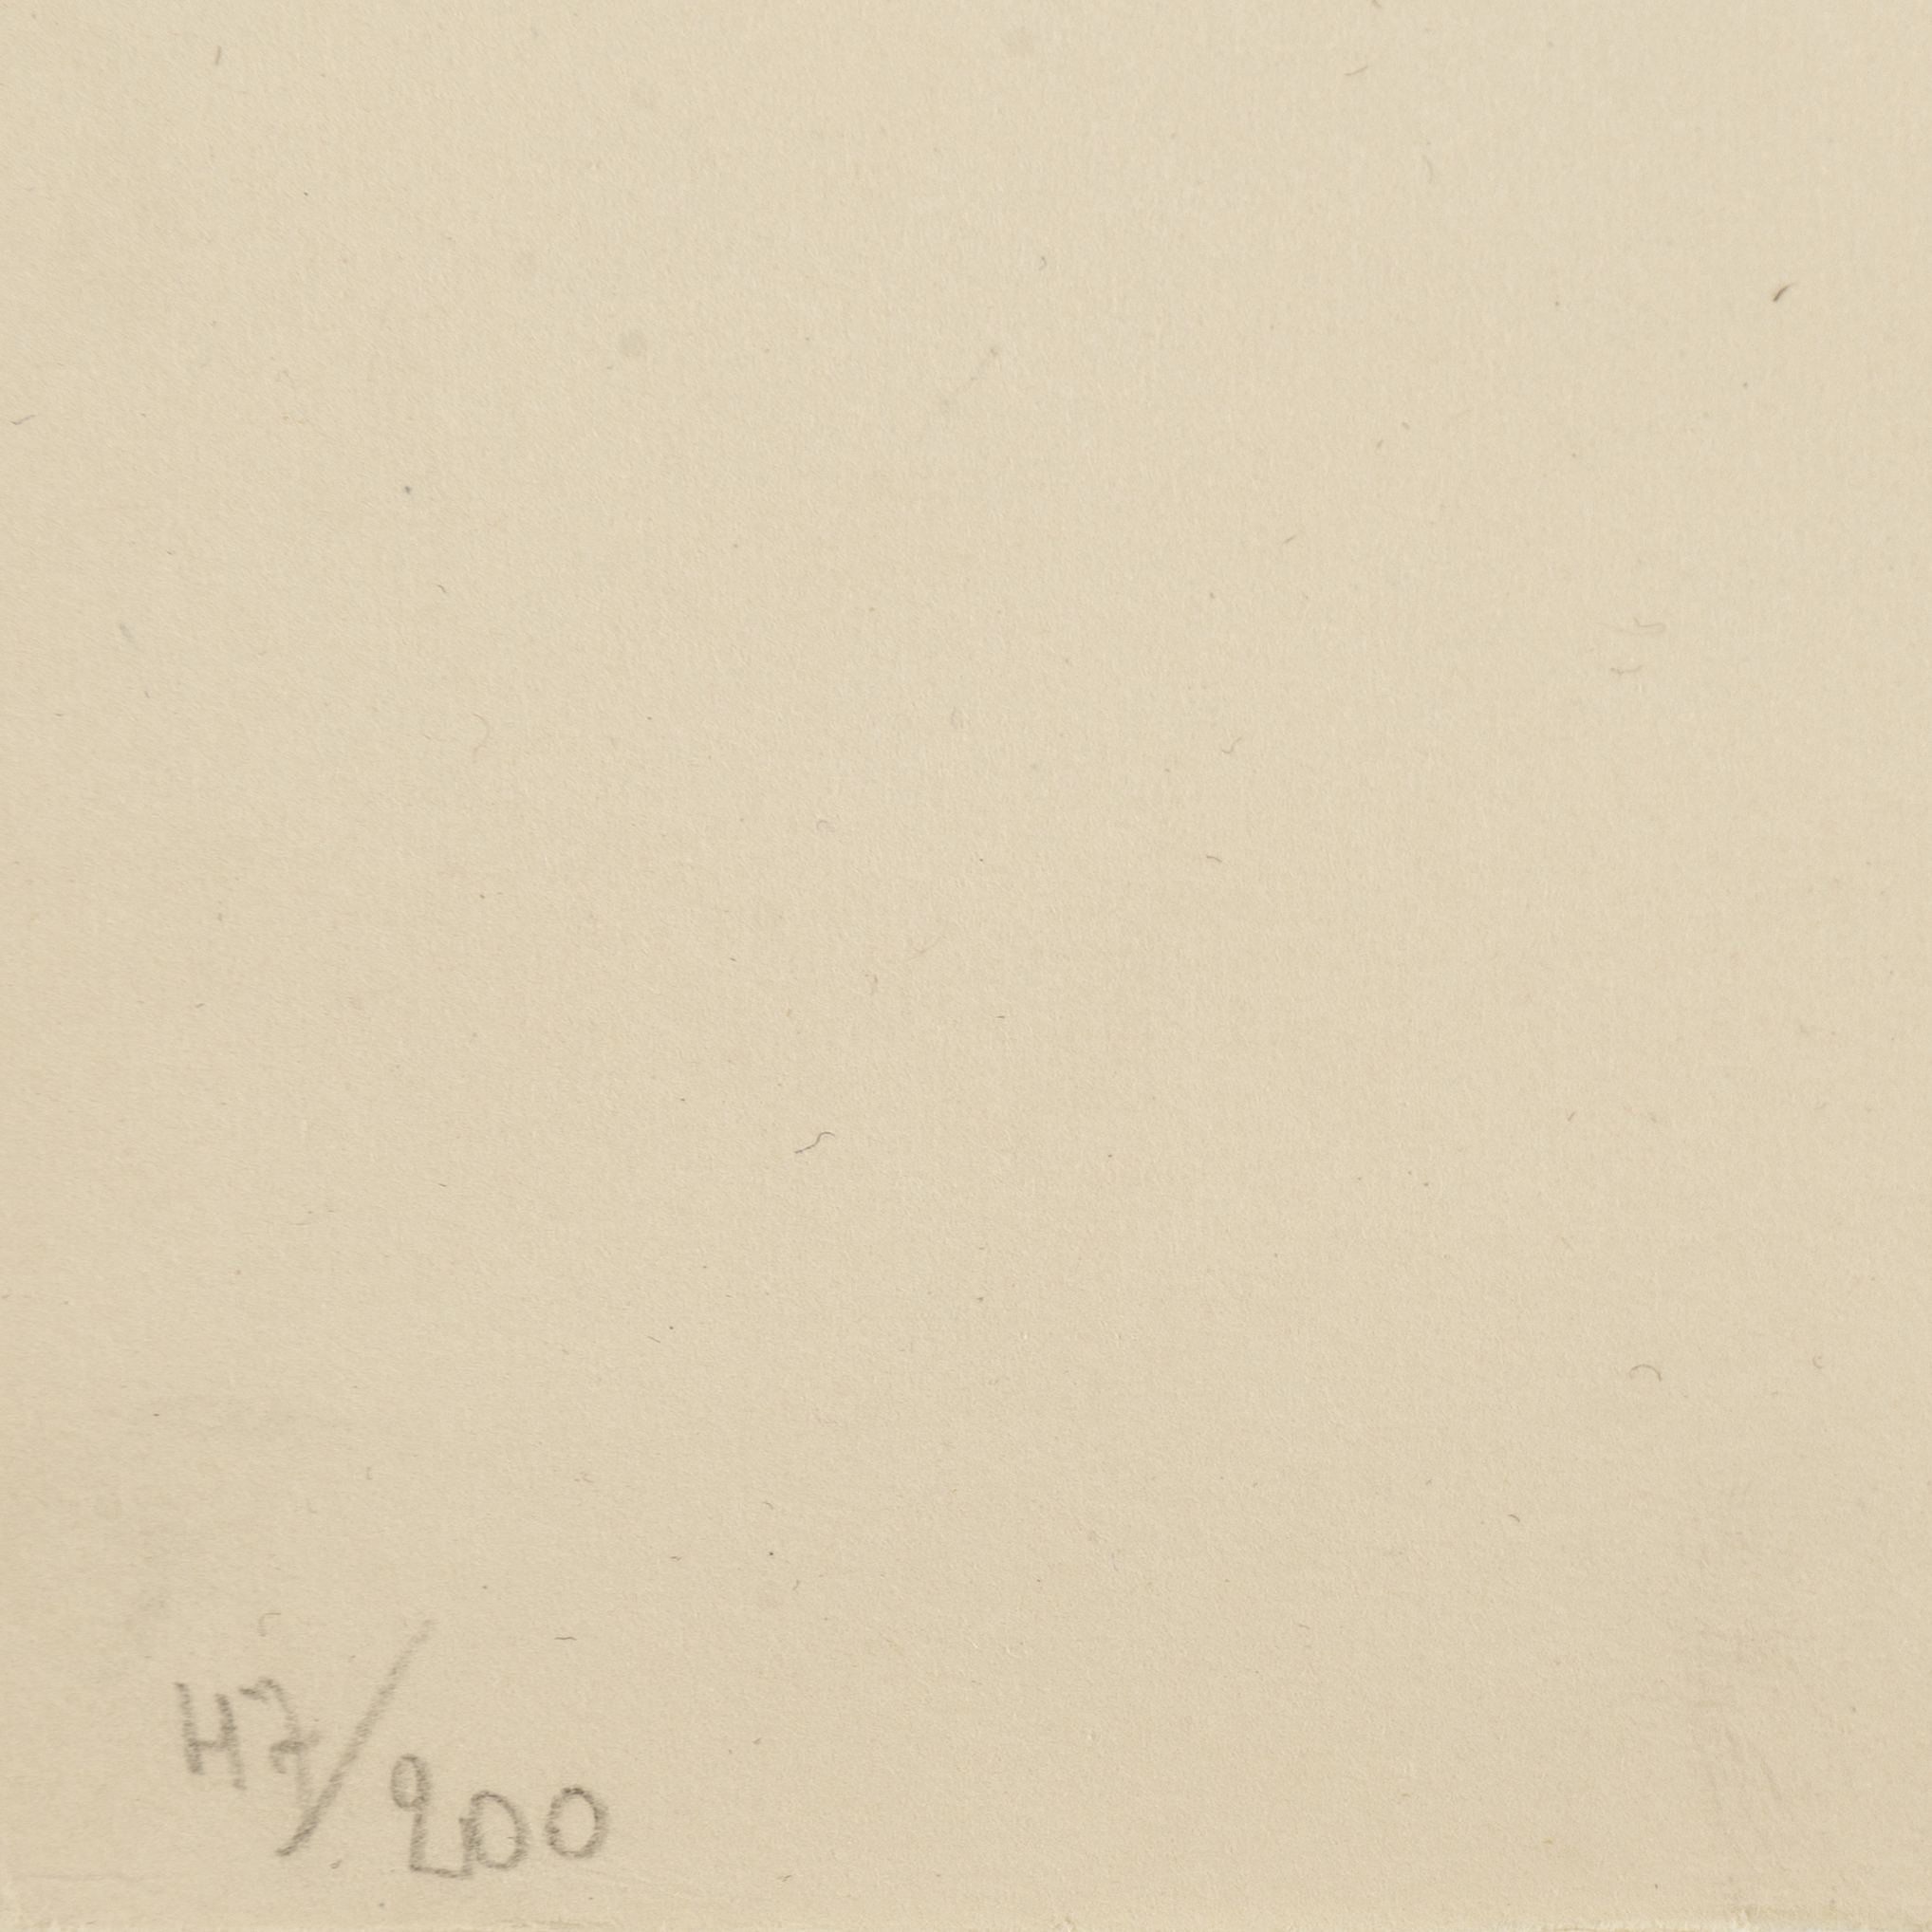 JEAN ARP, Lithograph, Signed And Numbered 47/200.